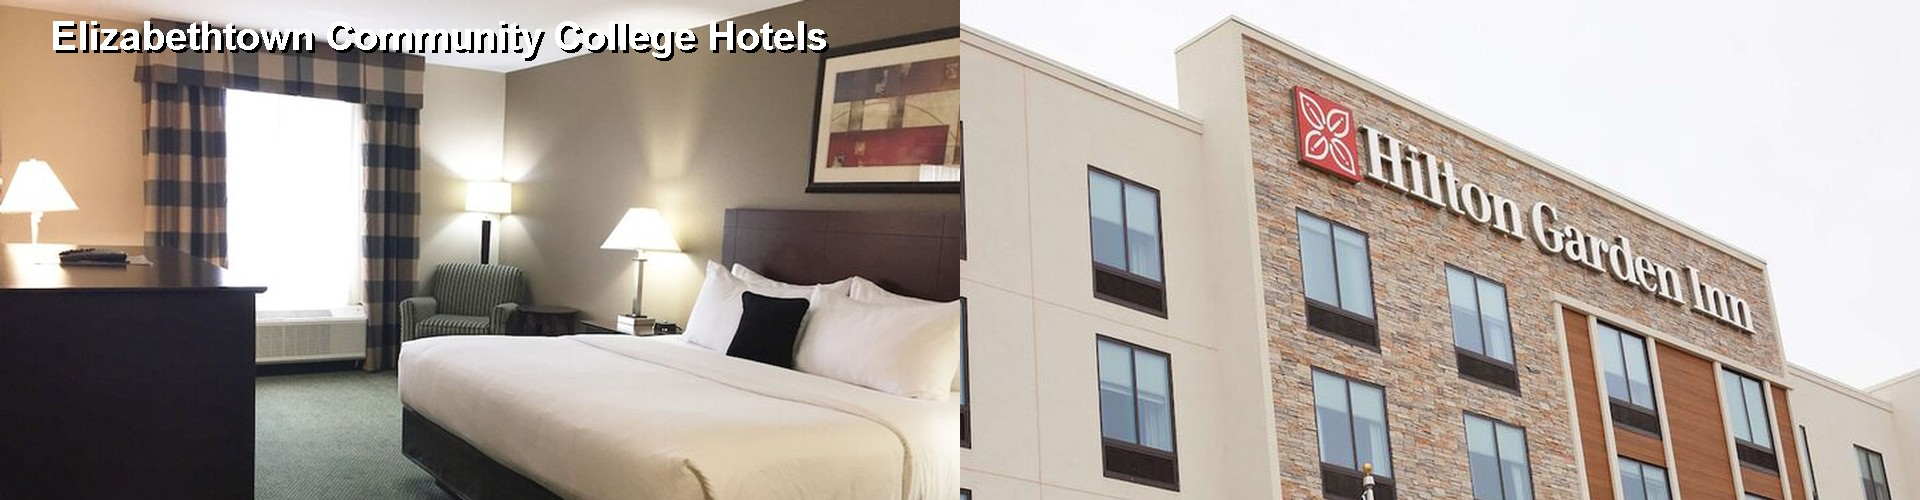 $51+ Hotels Near Elizabethtown Community College KY